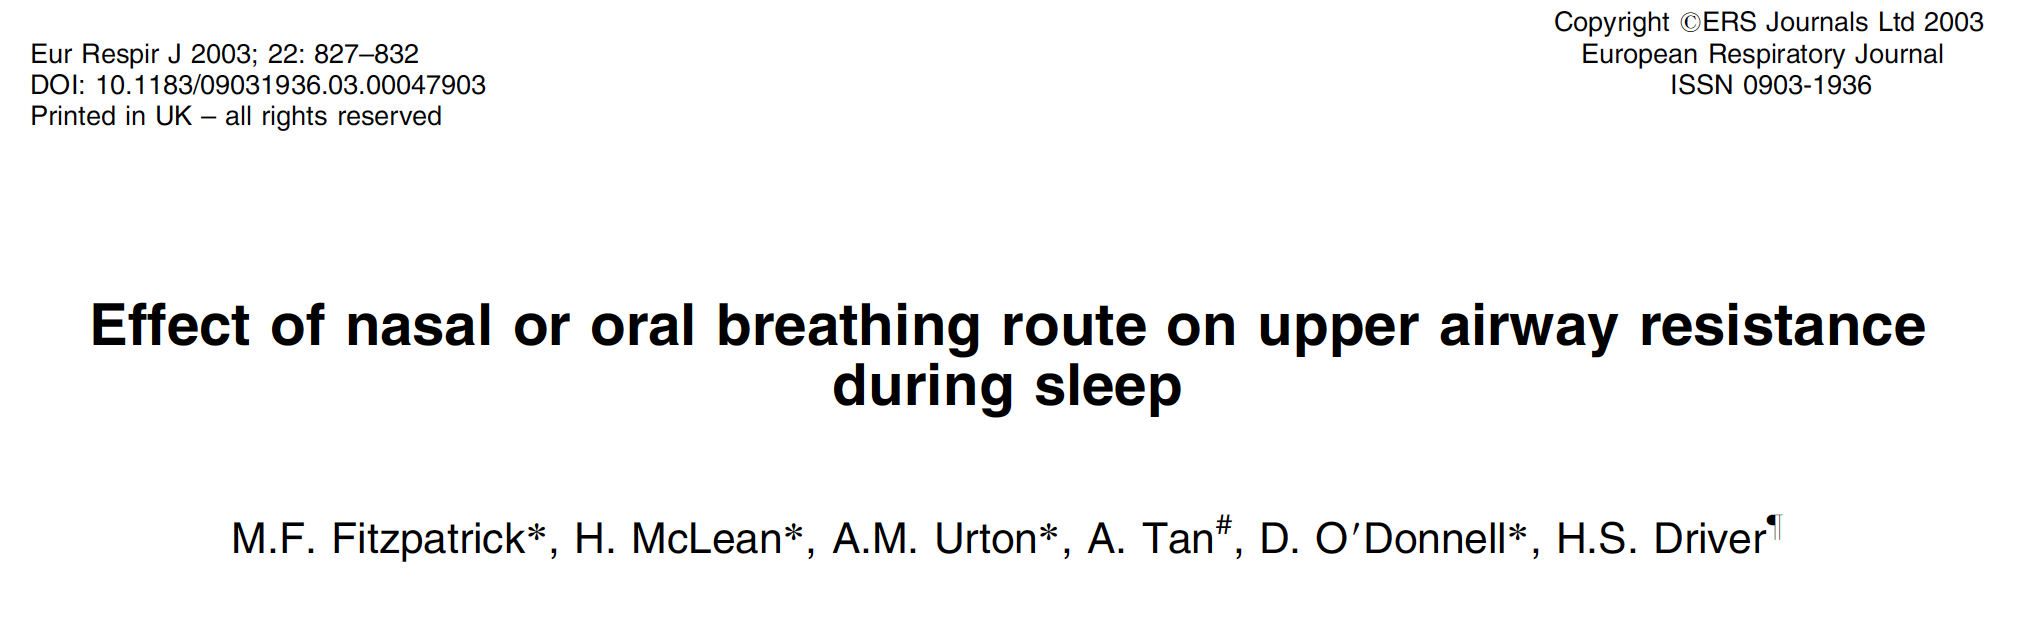 - Mouth breathing during sleep significantly increases upper airway resistance and obstructive sleep apnea